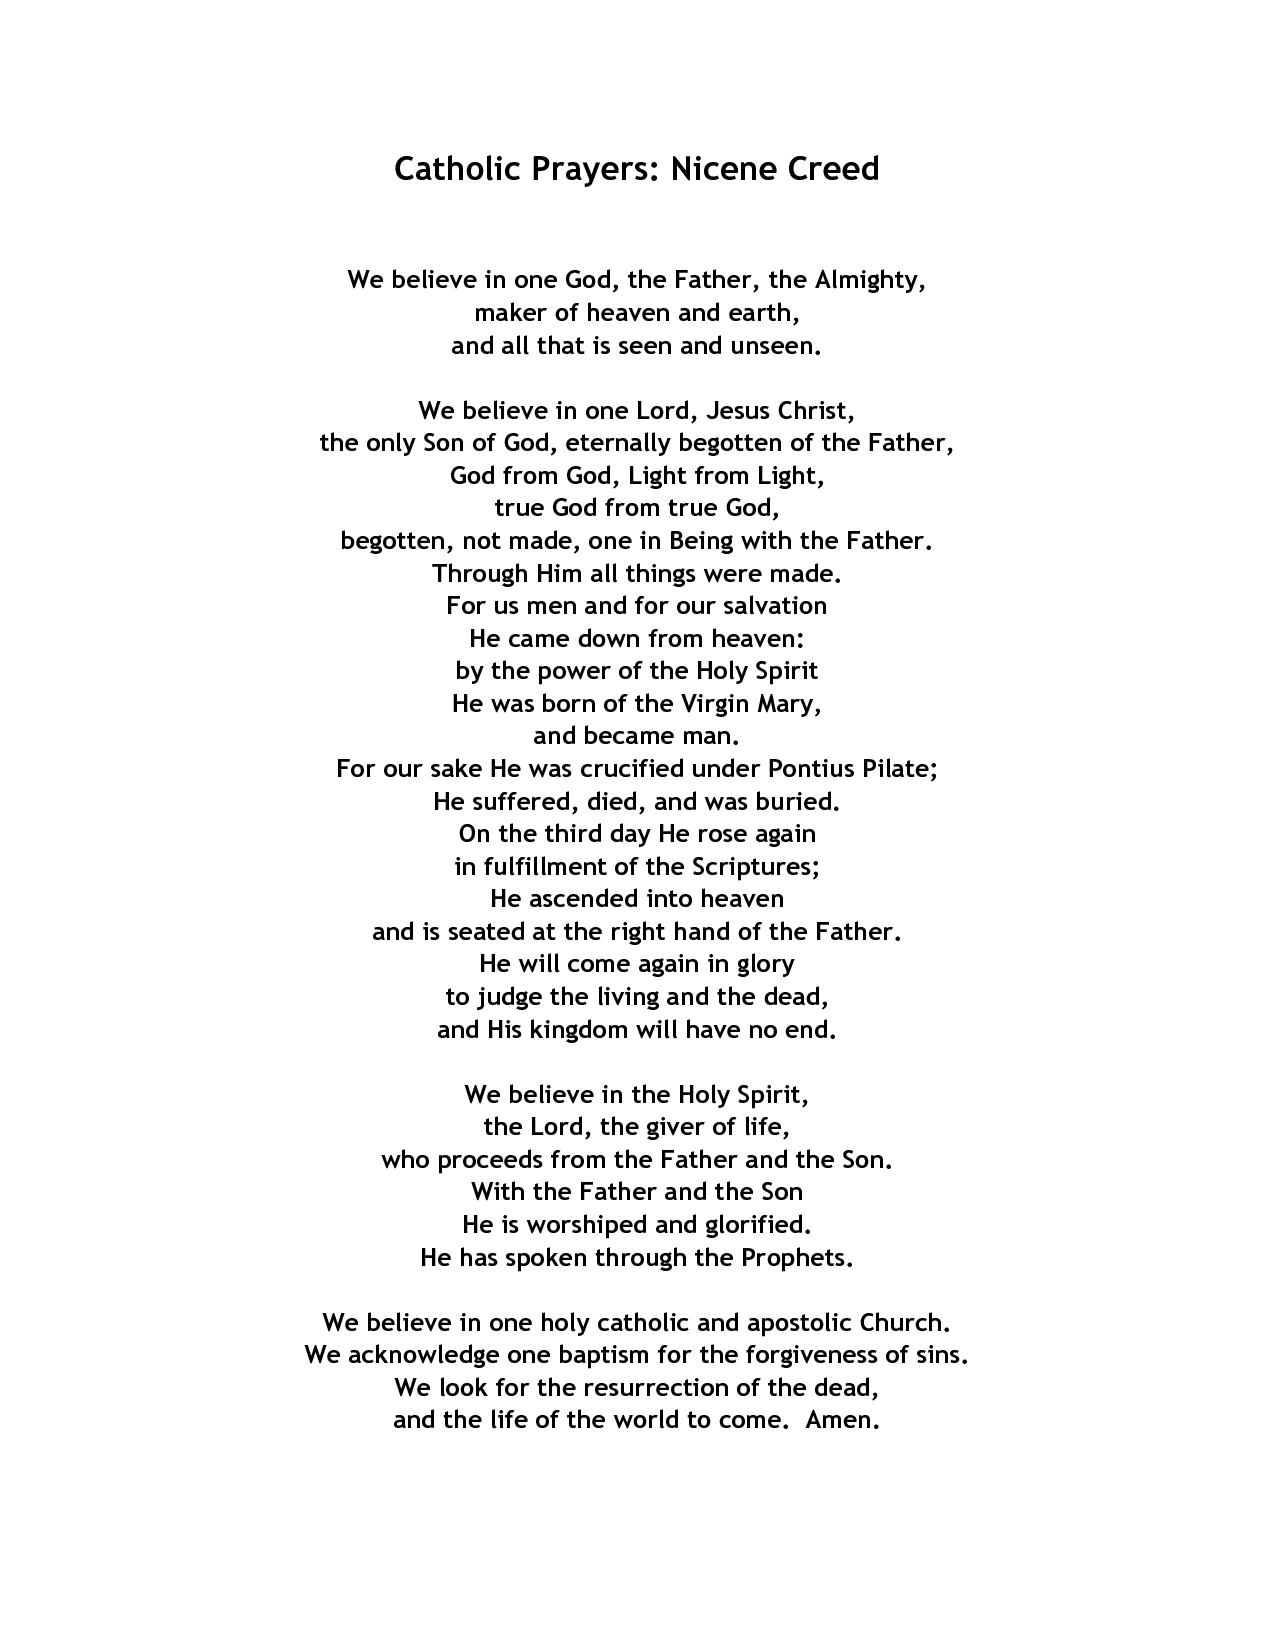 Catholic Prayers Nicene Creed